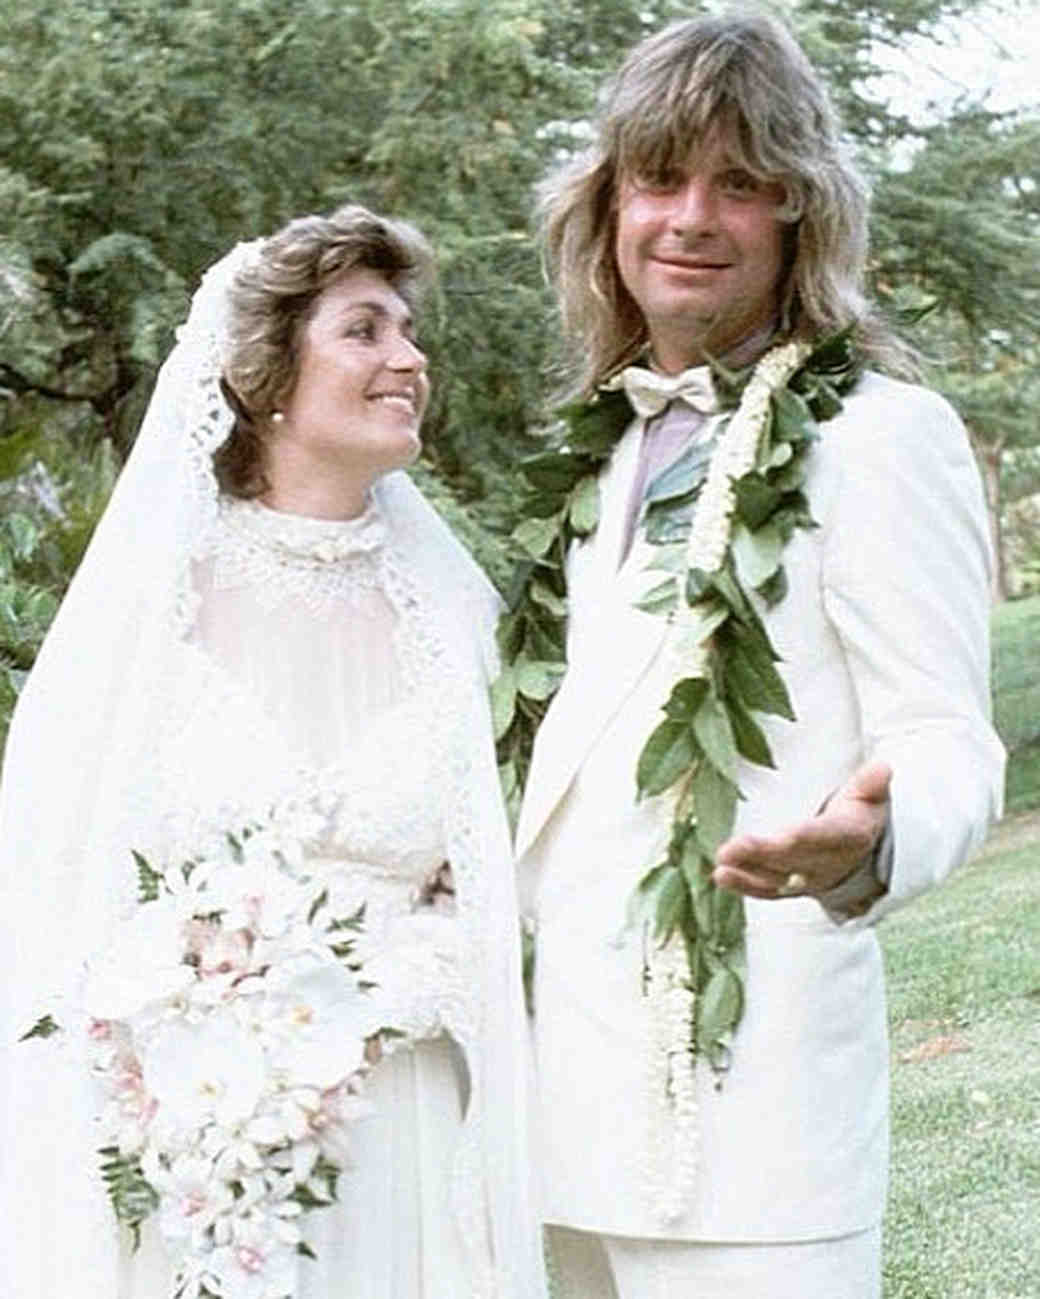 1982: Ozzy Osbourne and Sharon Arden